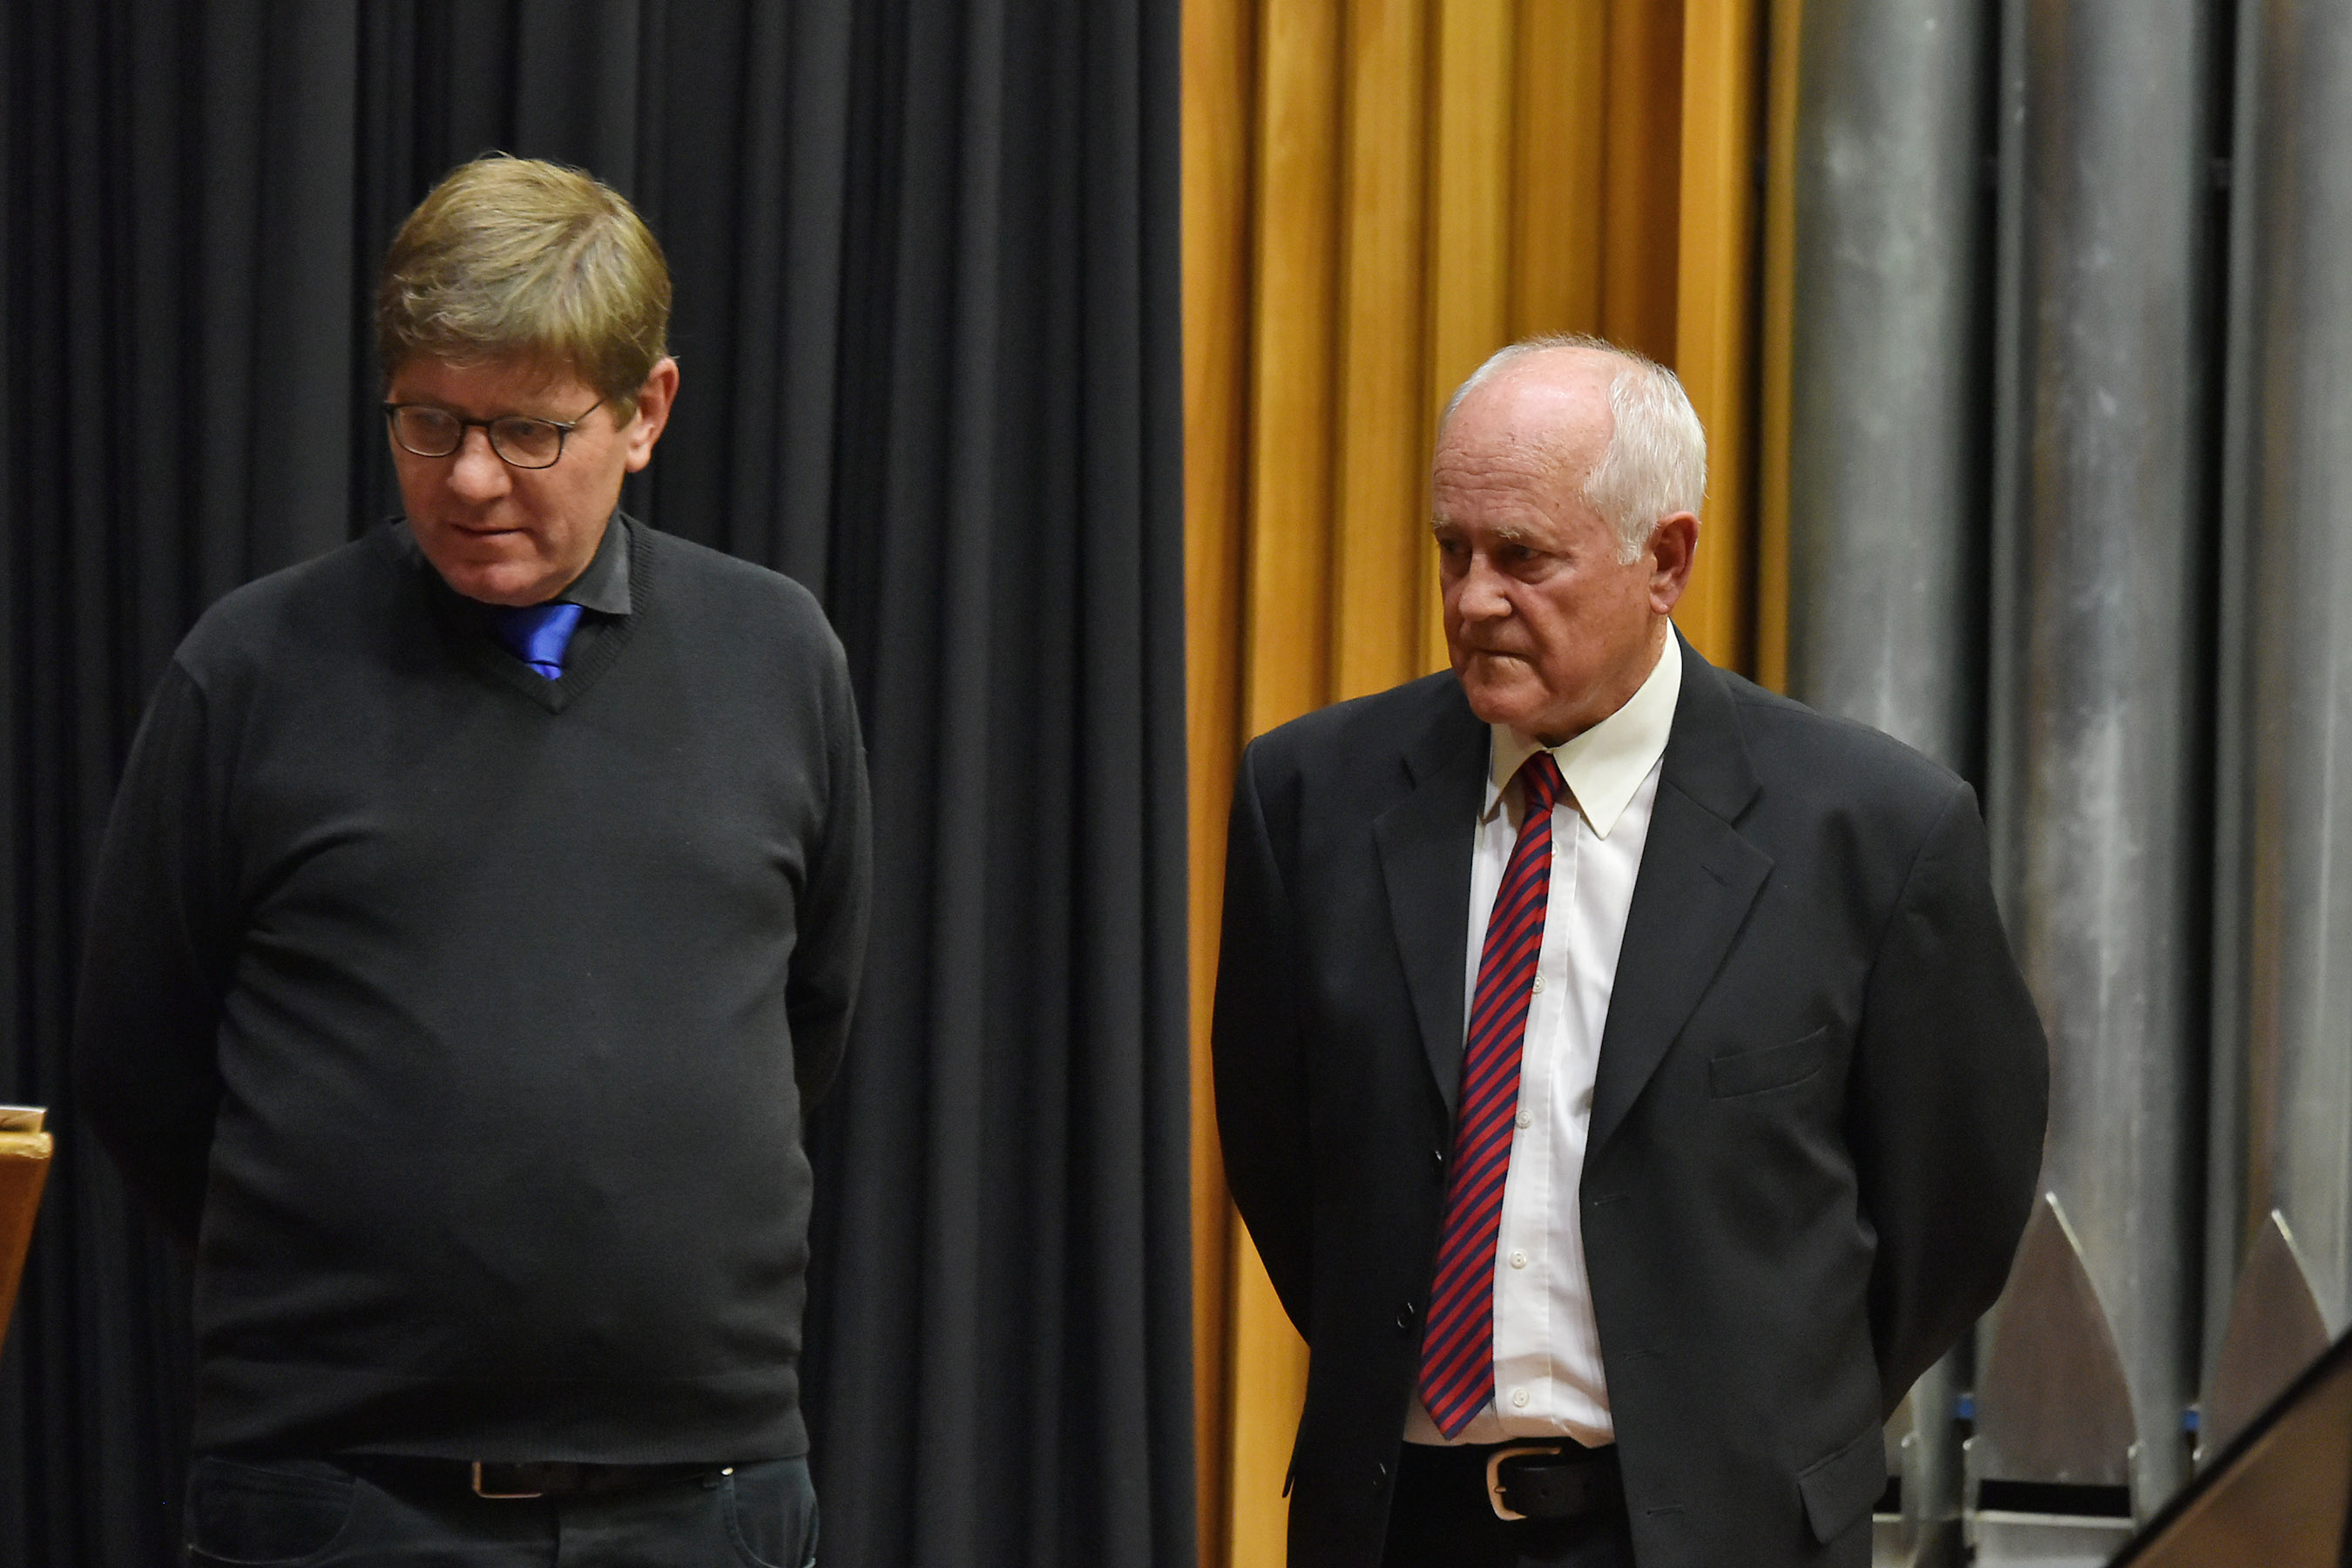 Dr Jan Beukes and Heinrich Armer